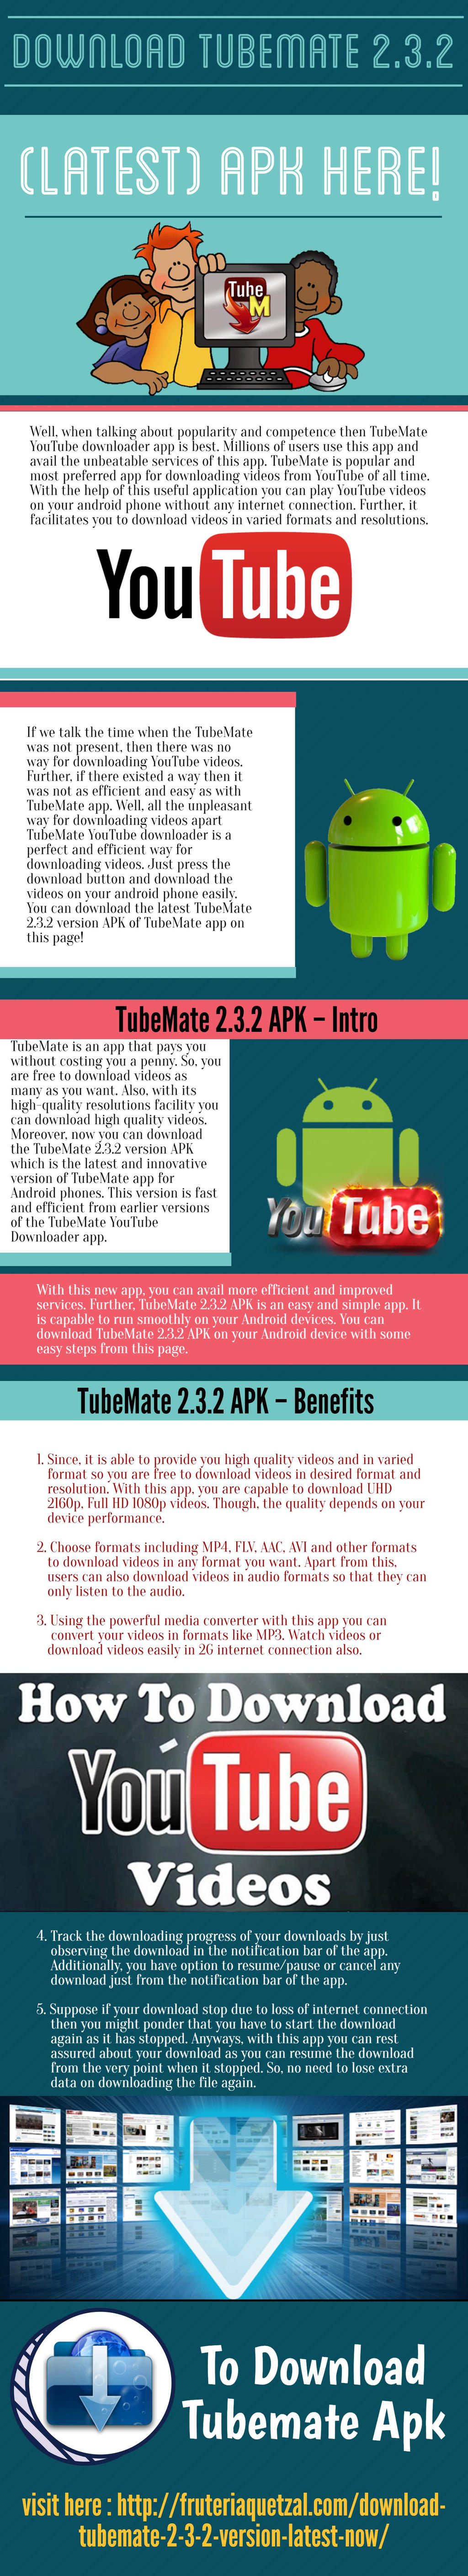 Download TubeMate 2 3 2 (latest) APK here by ernestwallace on DeviantArt